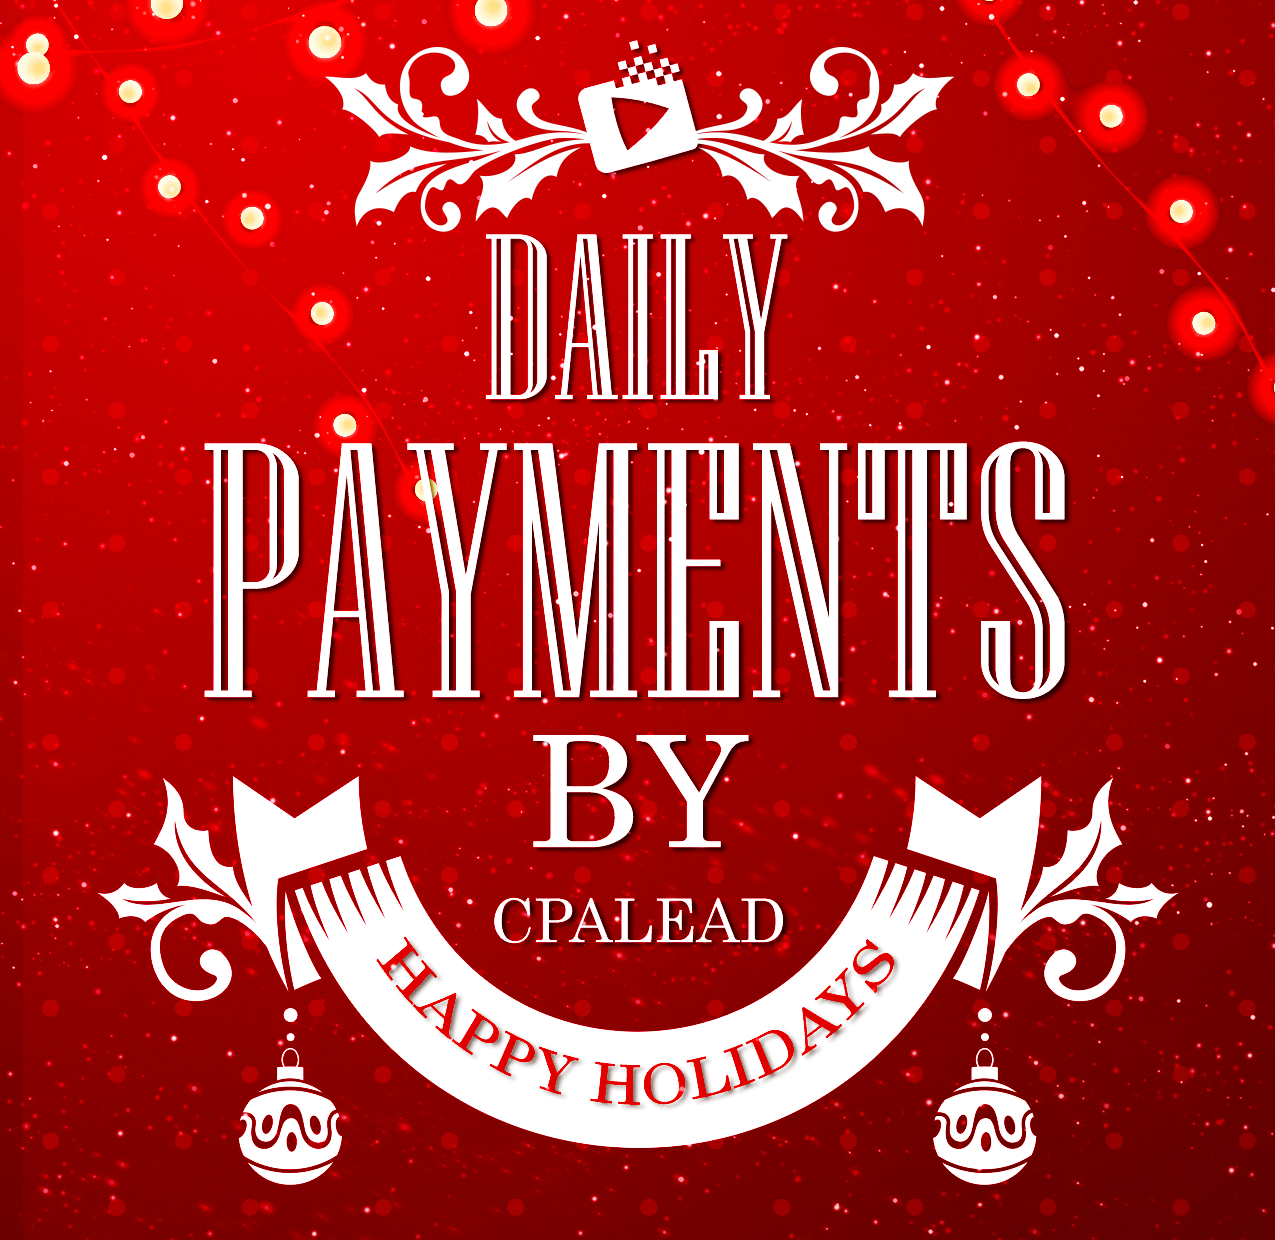 CPAlead Daily Payments